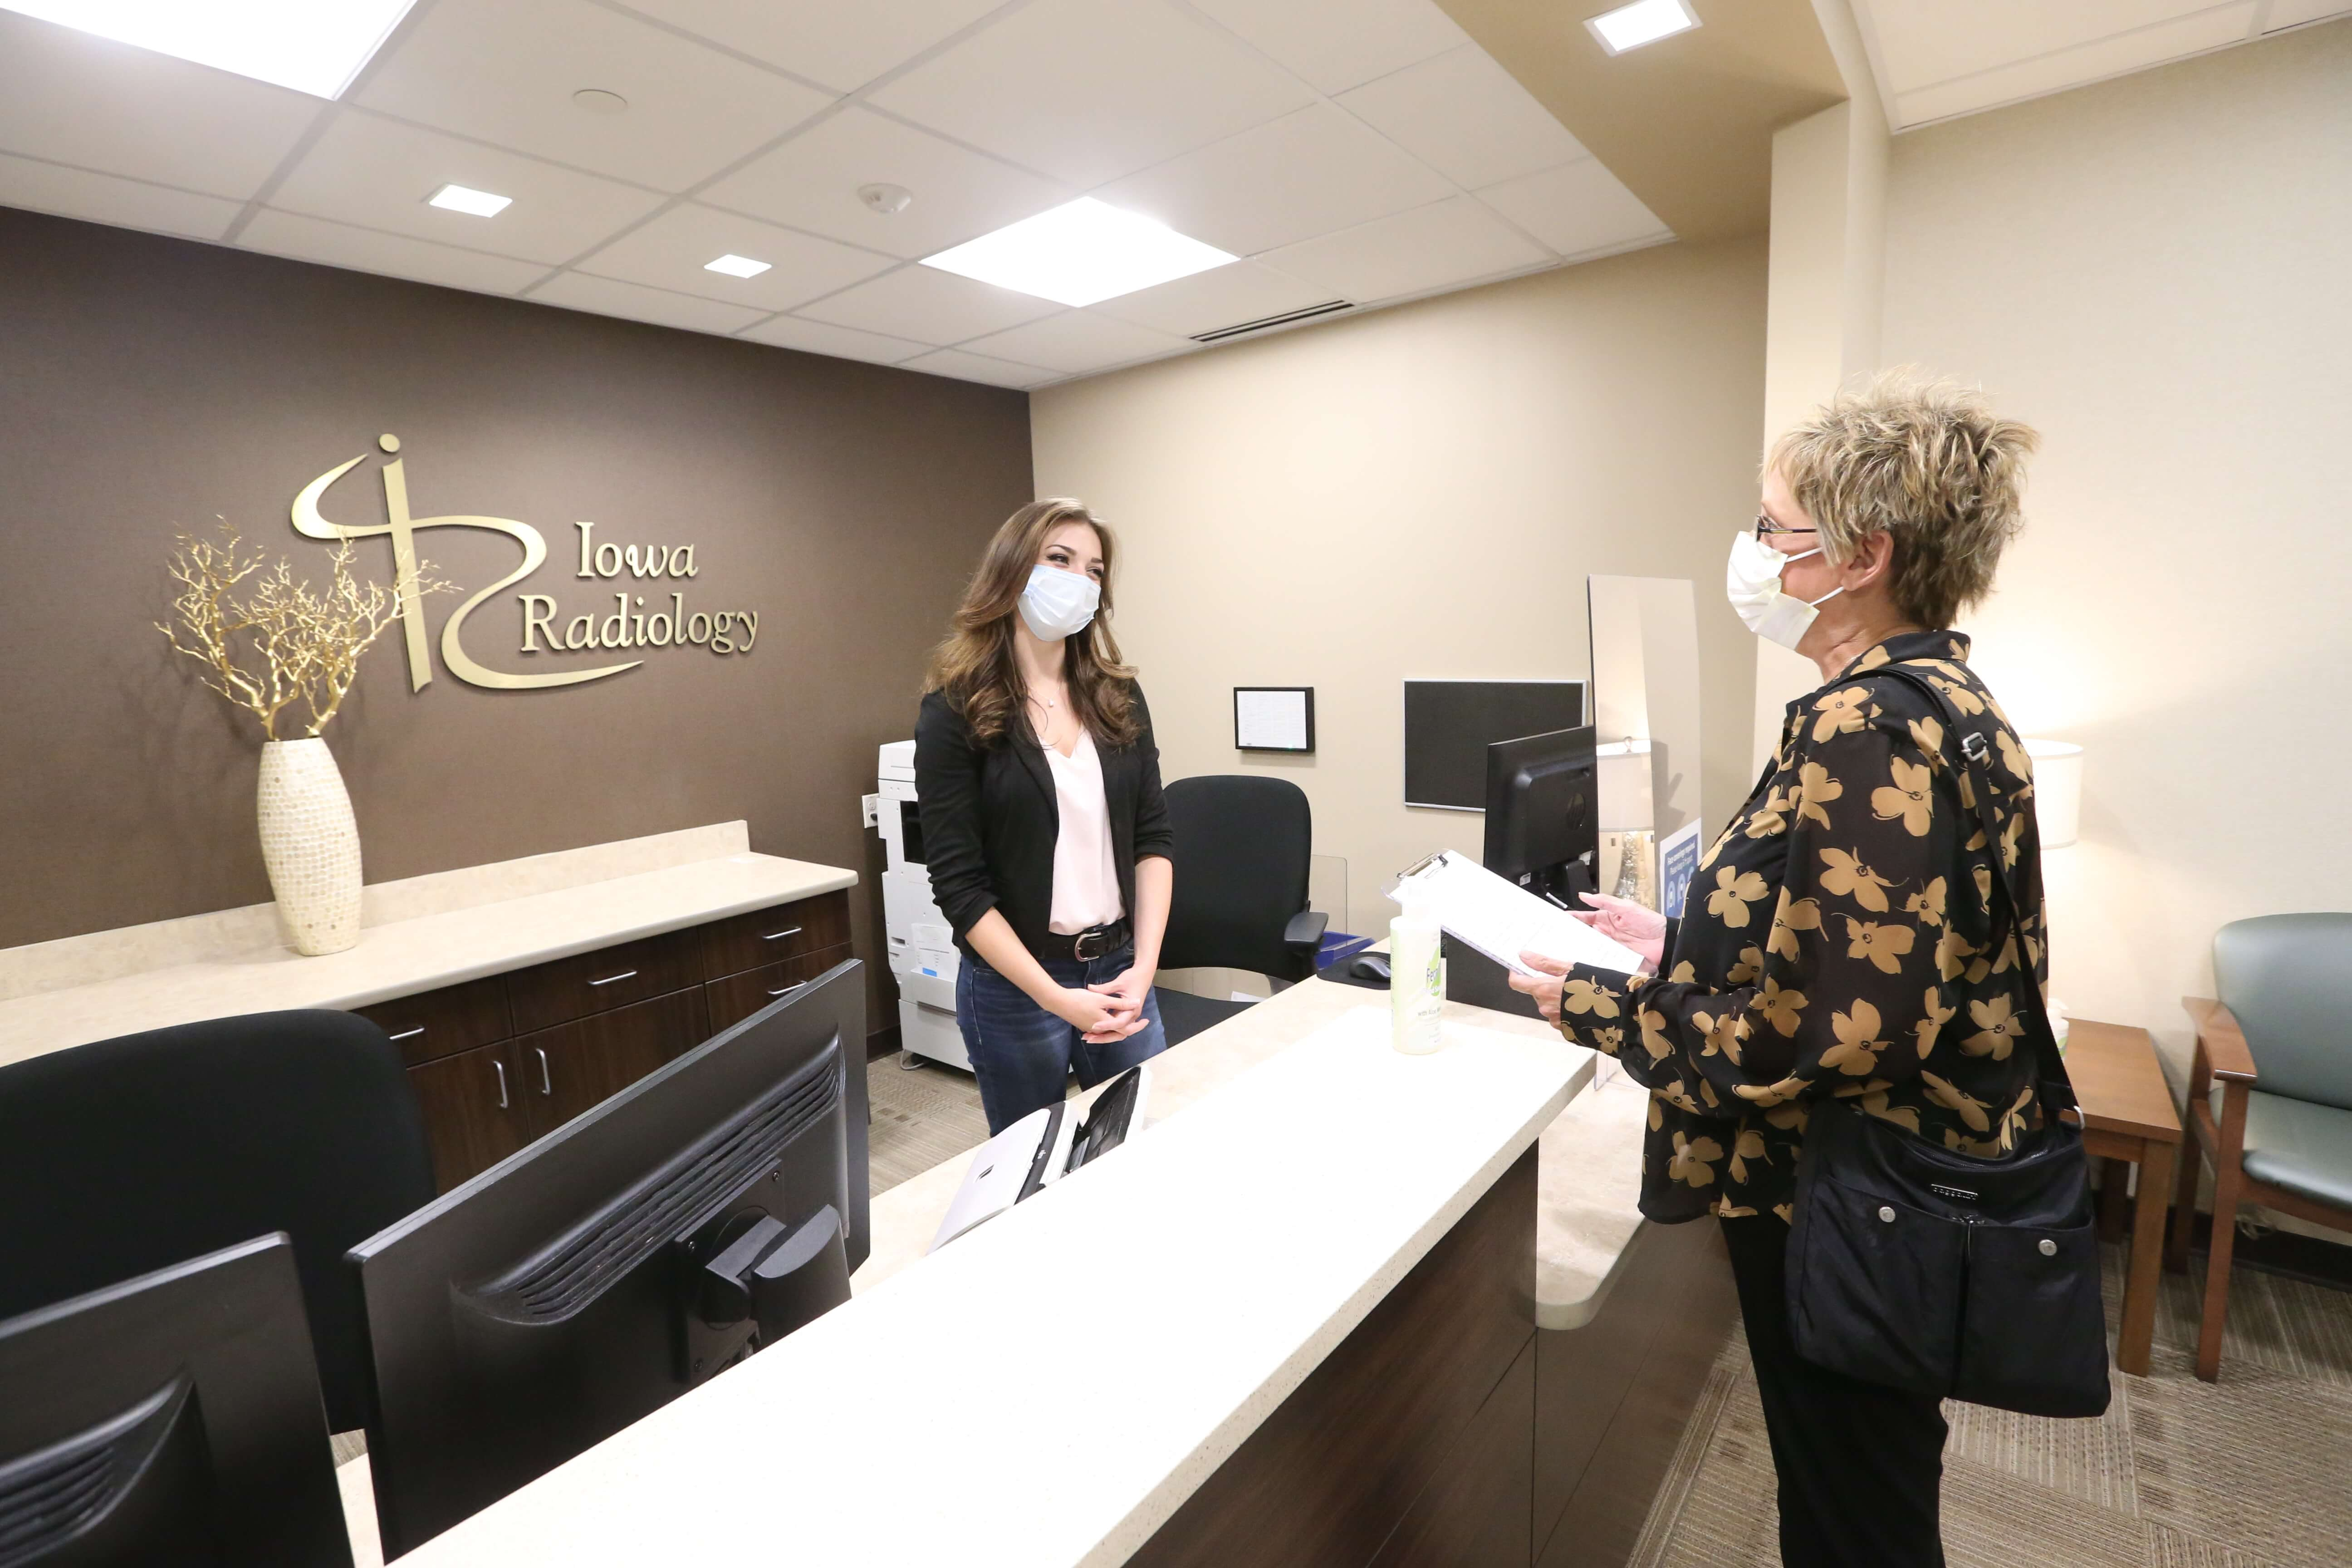 patient-checking-in-for-appointment-at-iowa-radiology